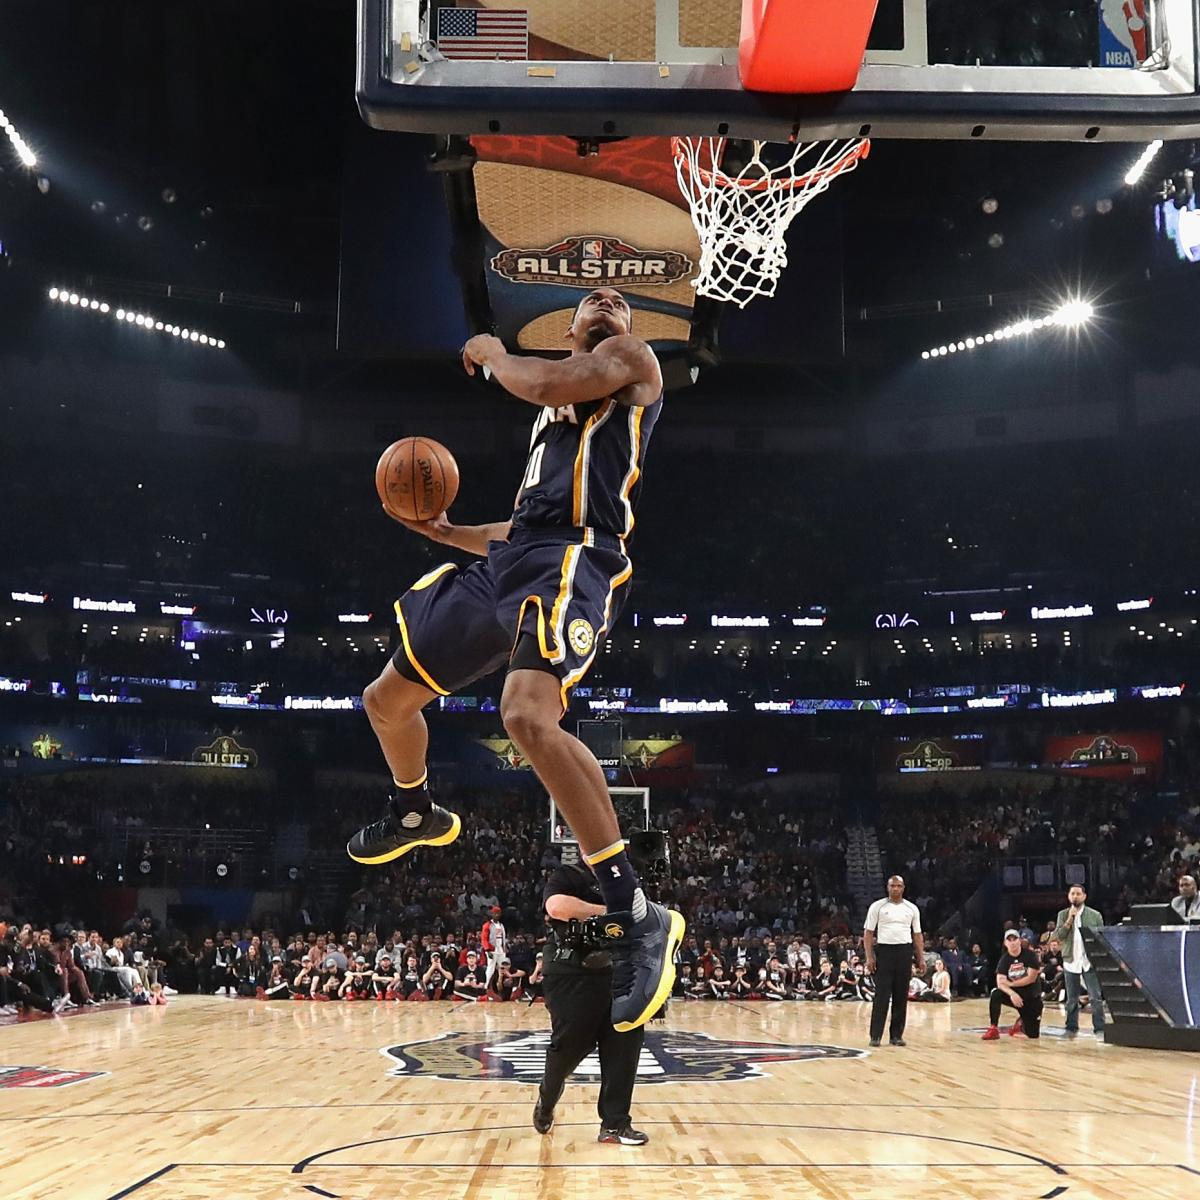 Dunk Contest 2017: NBA Slam Dunk Contest 2017: Highlights, Reaction From